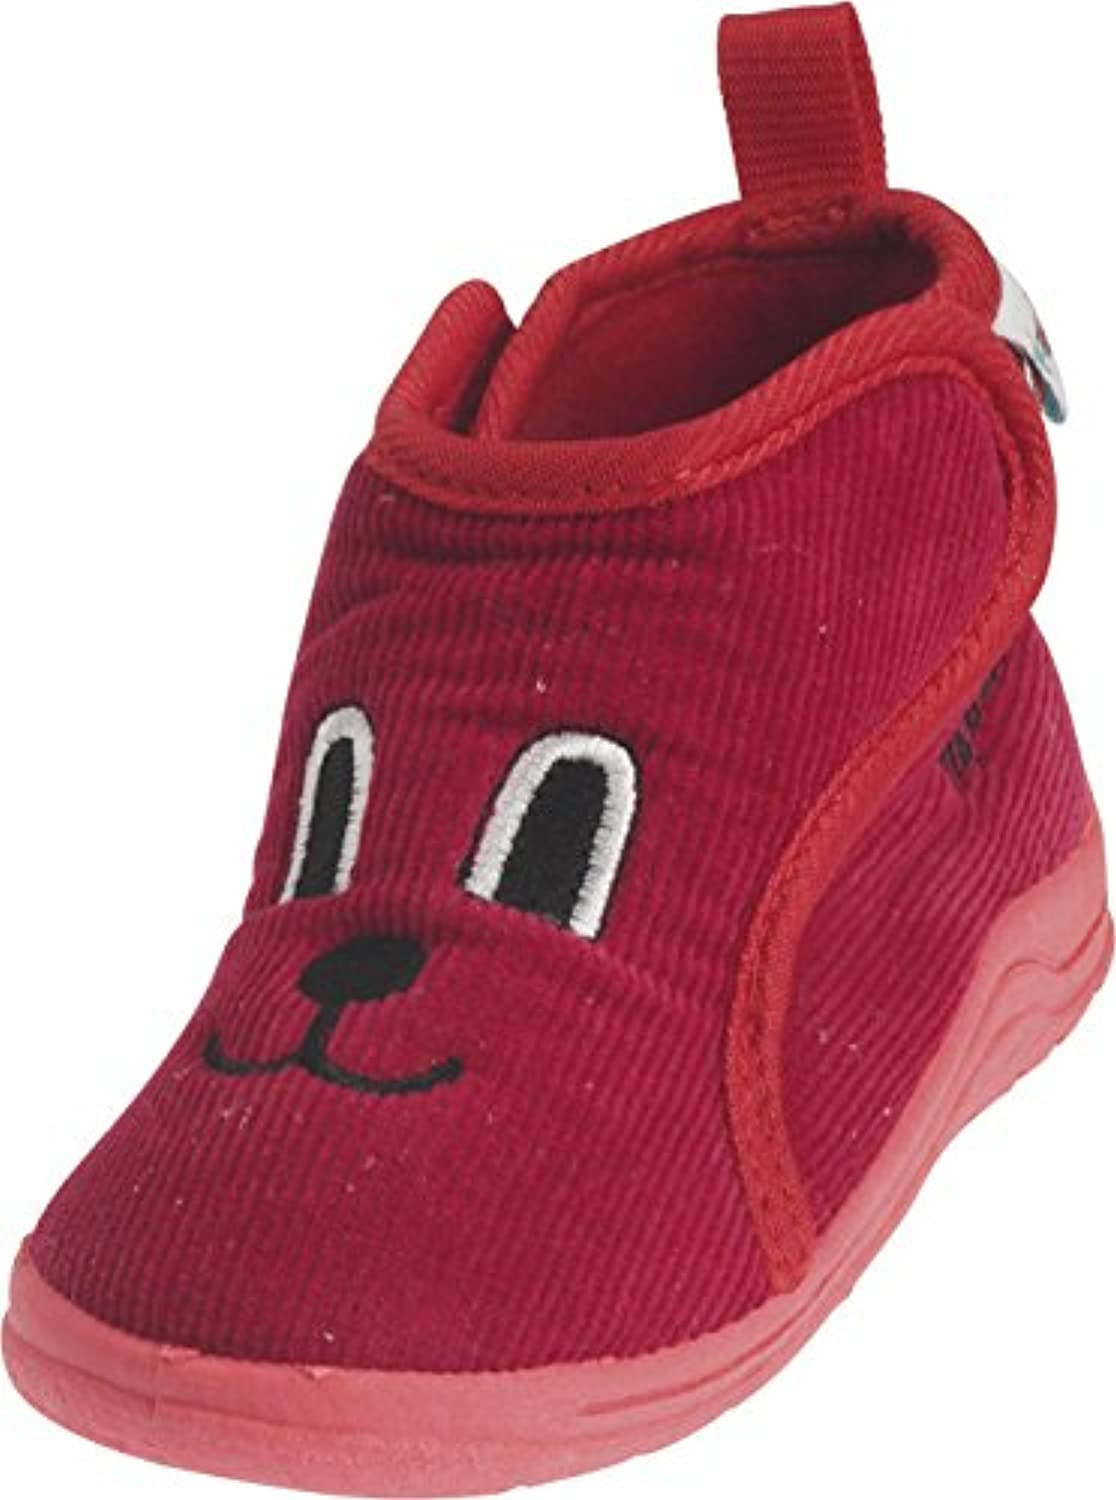 Playshoes Boys House Face Design Slippers 201752 Red 2.5 UK Child, 18 EU, Regular